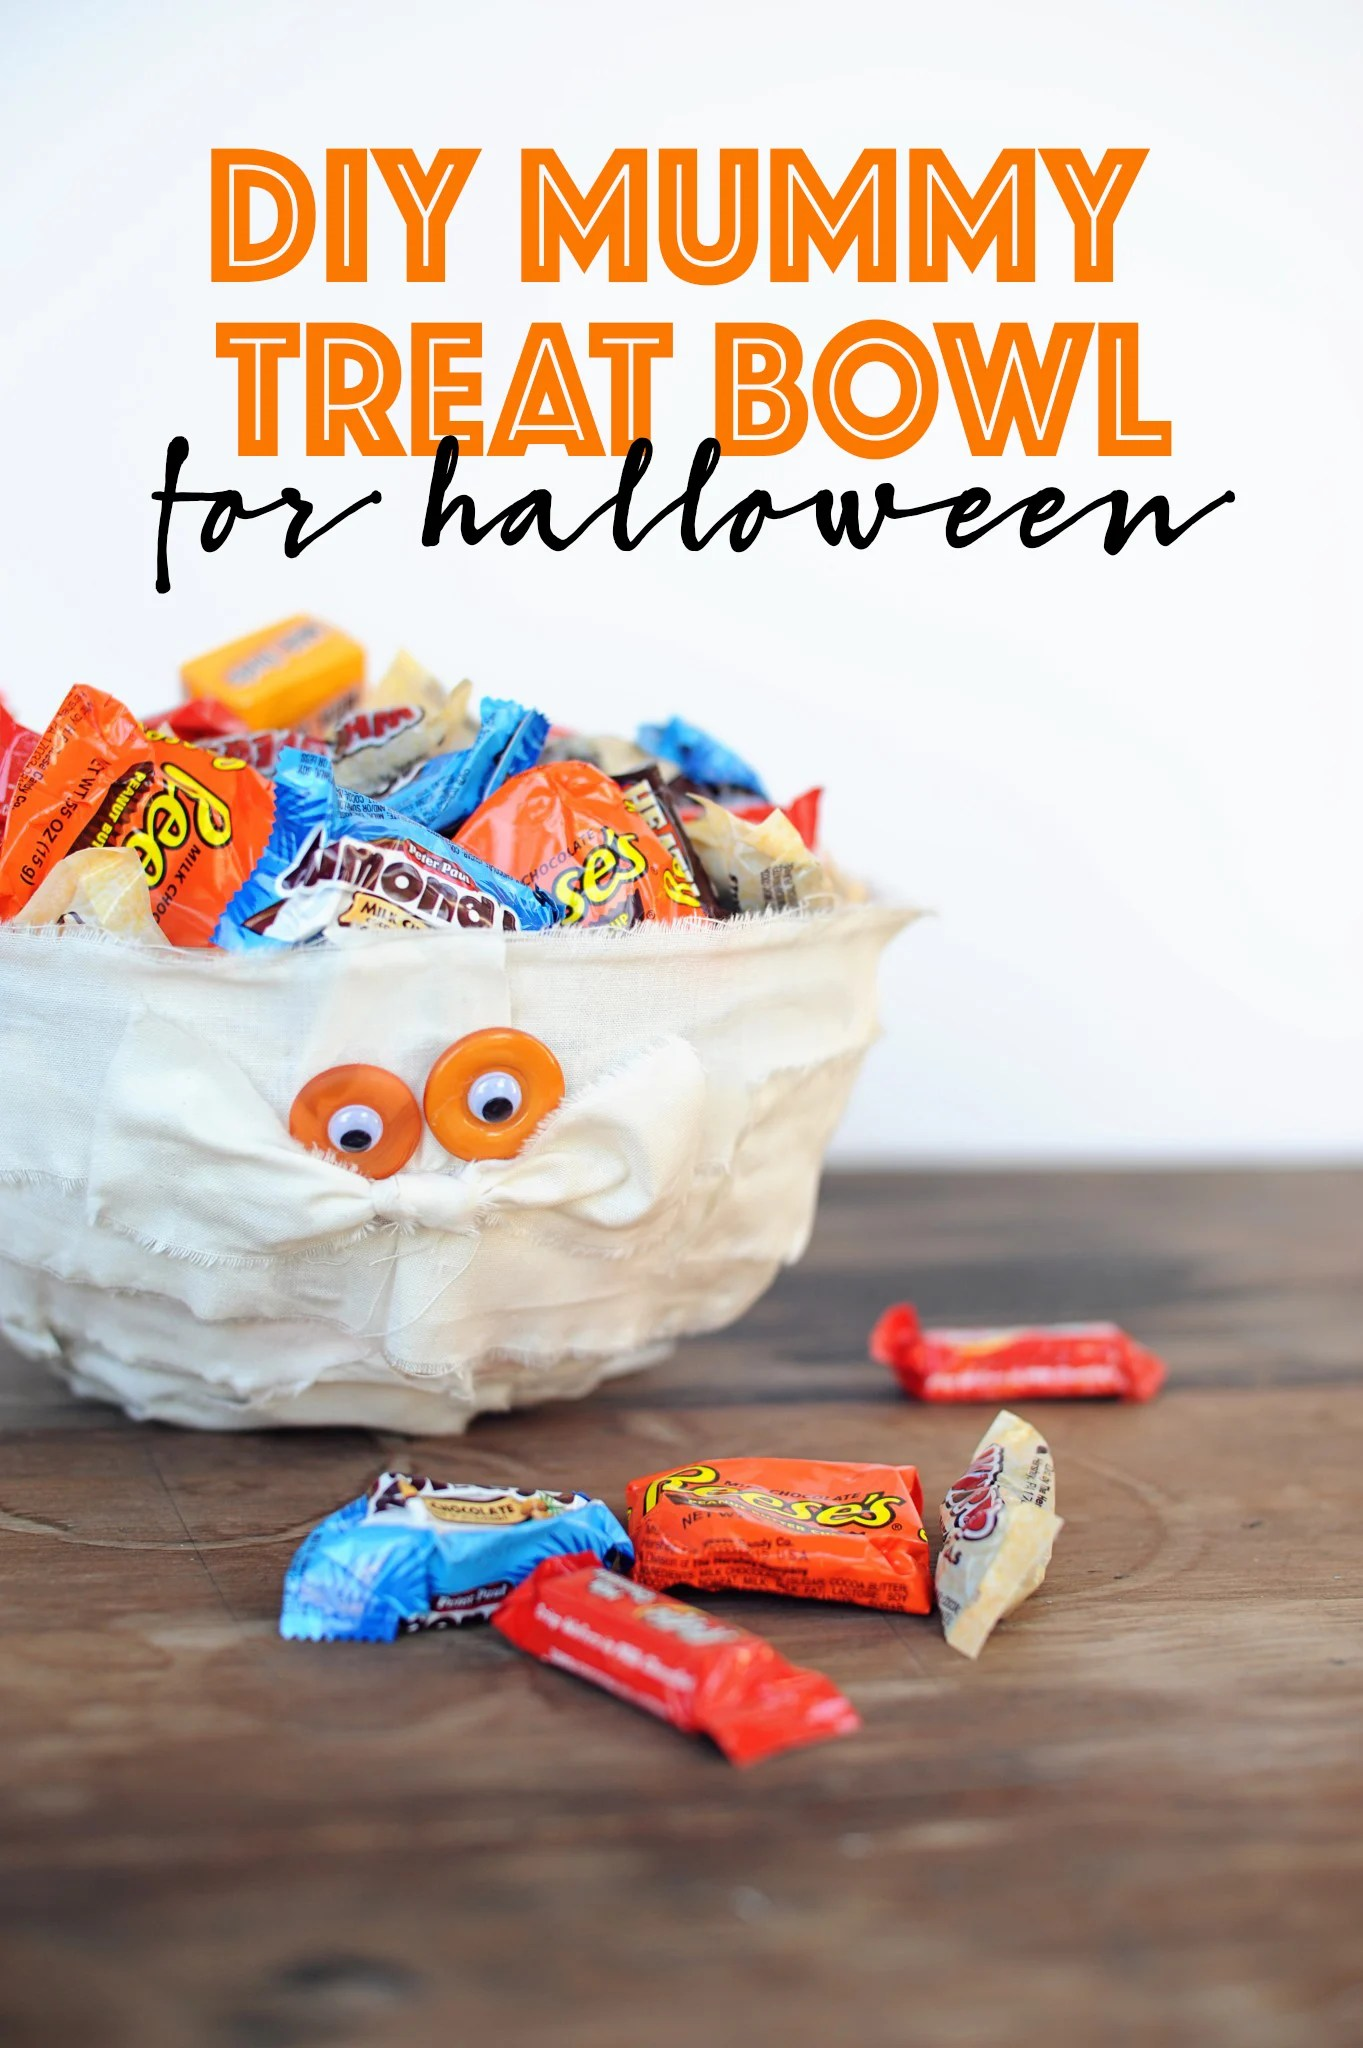 diy mummy bowl for halloween